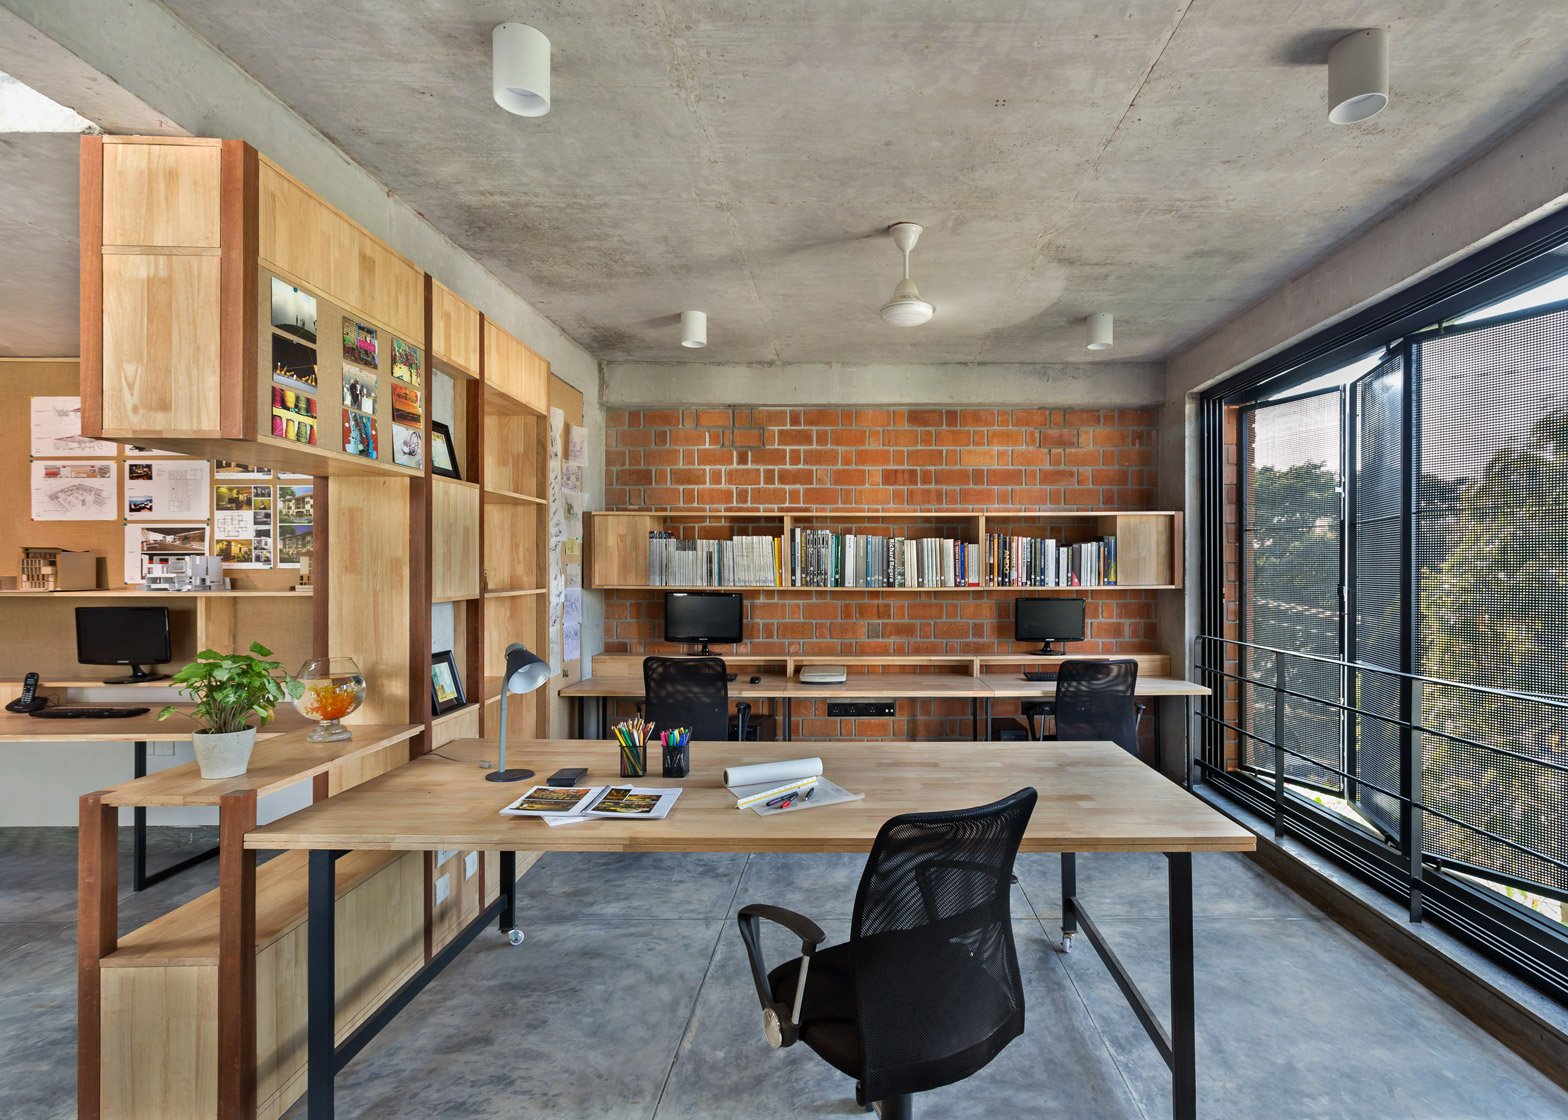 architects-home-studio-betweenspaces-bangalore_dezeen_1568_0